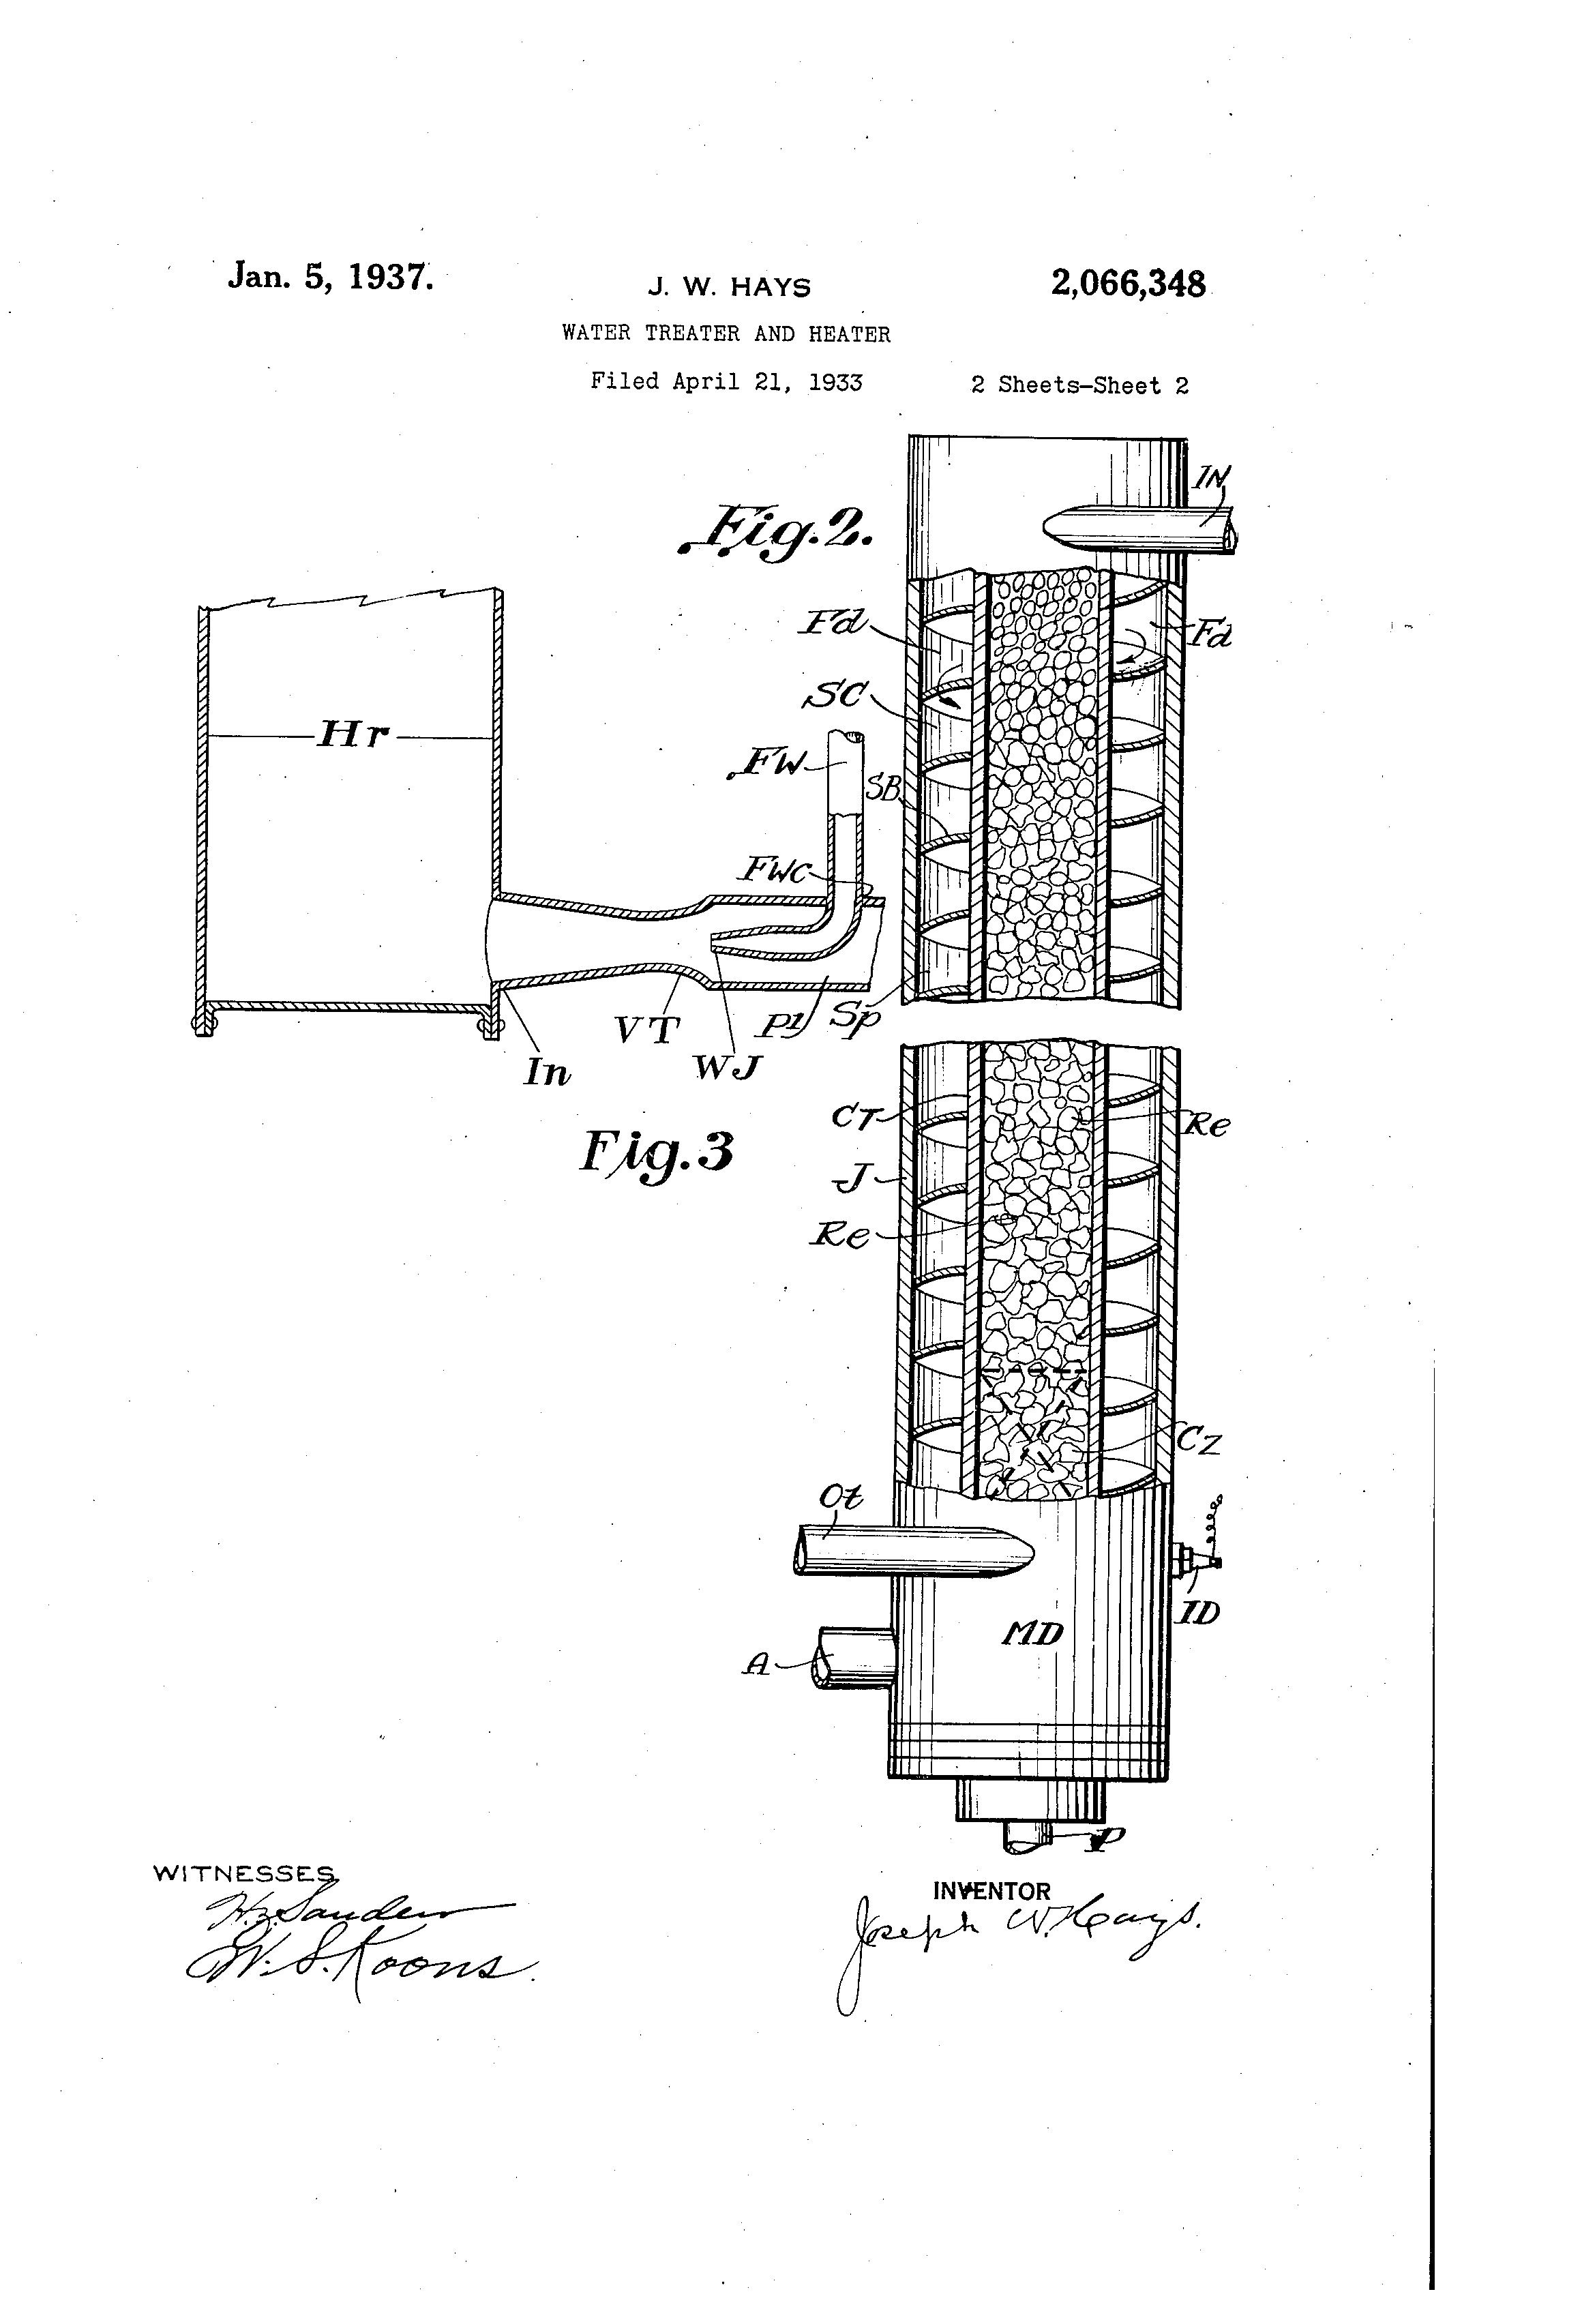 patent us2066348 - water treater and heater